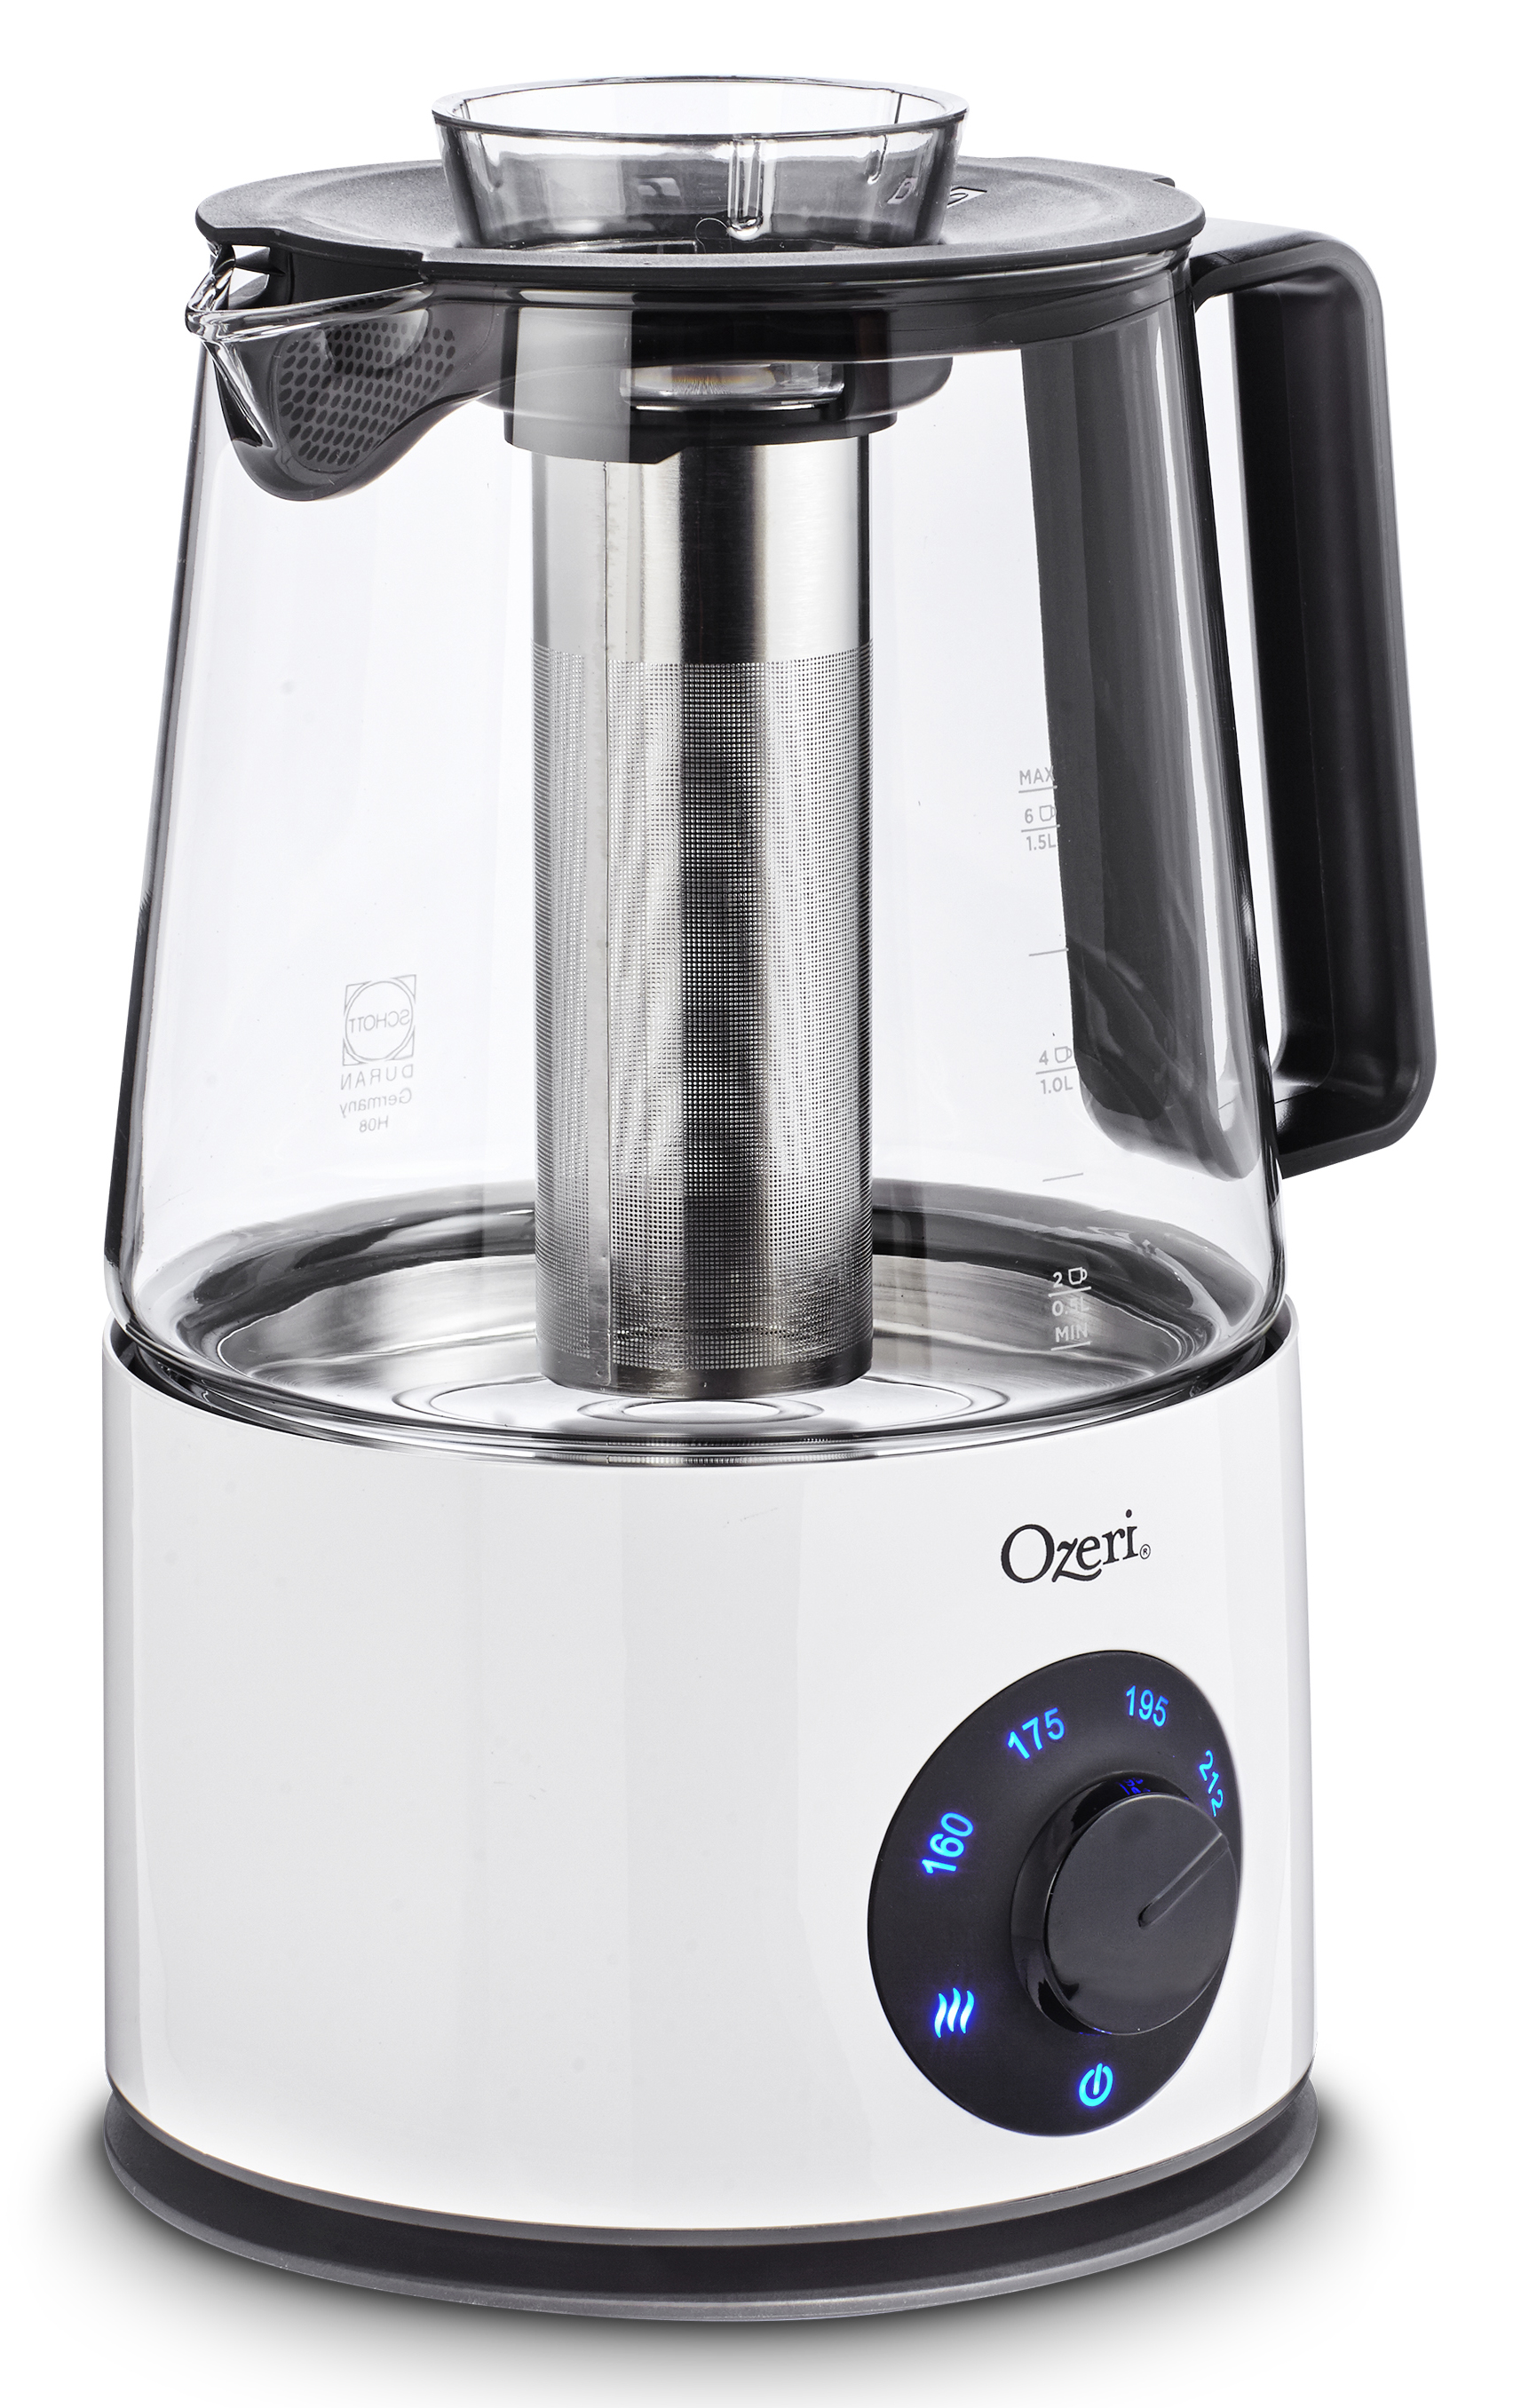 Ozeri OZTK1 Induction 1.5 L Tea Maker and Cordless Kettle, with Tea Infuser Sieve and SHOT Borosilicate Glass Carafe from Germany PartNumber: 00828365000P KsnValue: 3070756 MfgPartNumber: OZTK1